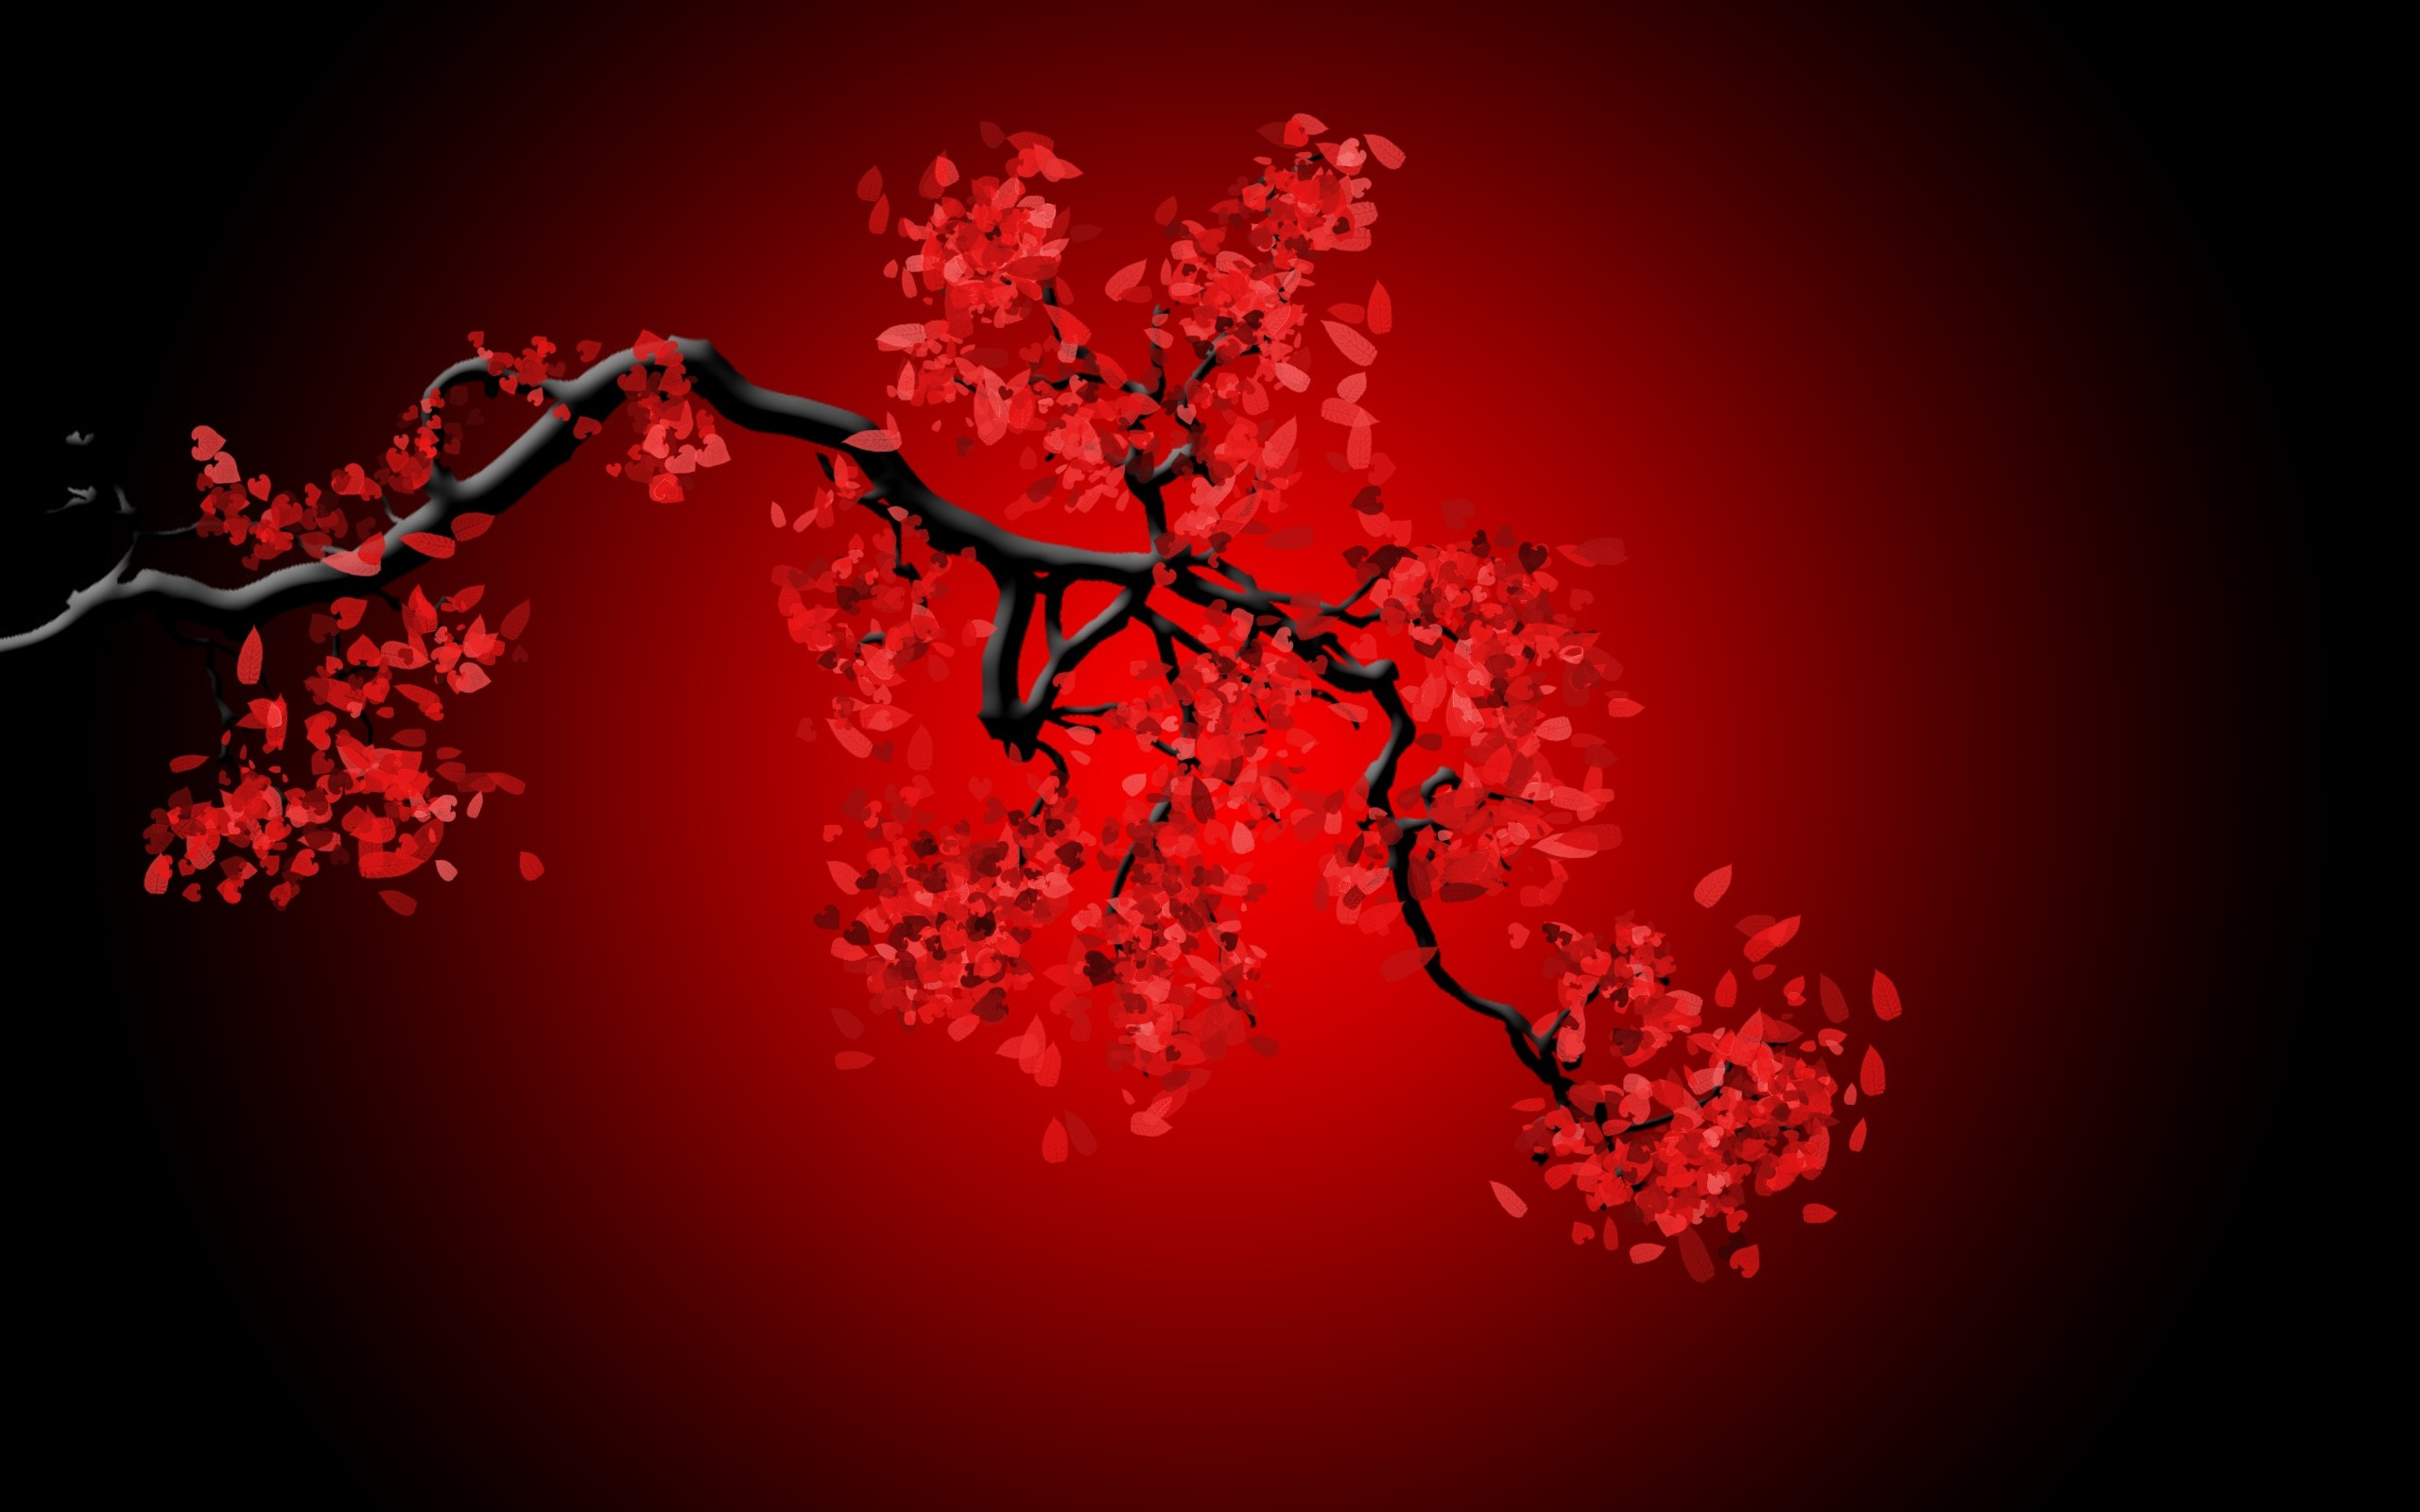 2560x1600 ... red-white-black-wallpaper-viewing-gallery-black-white- ...